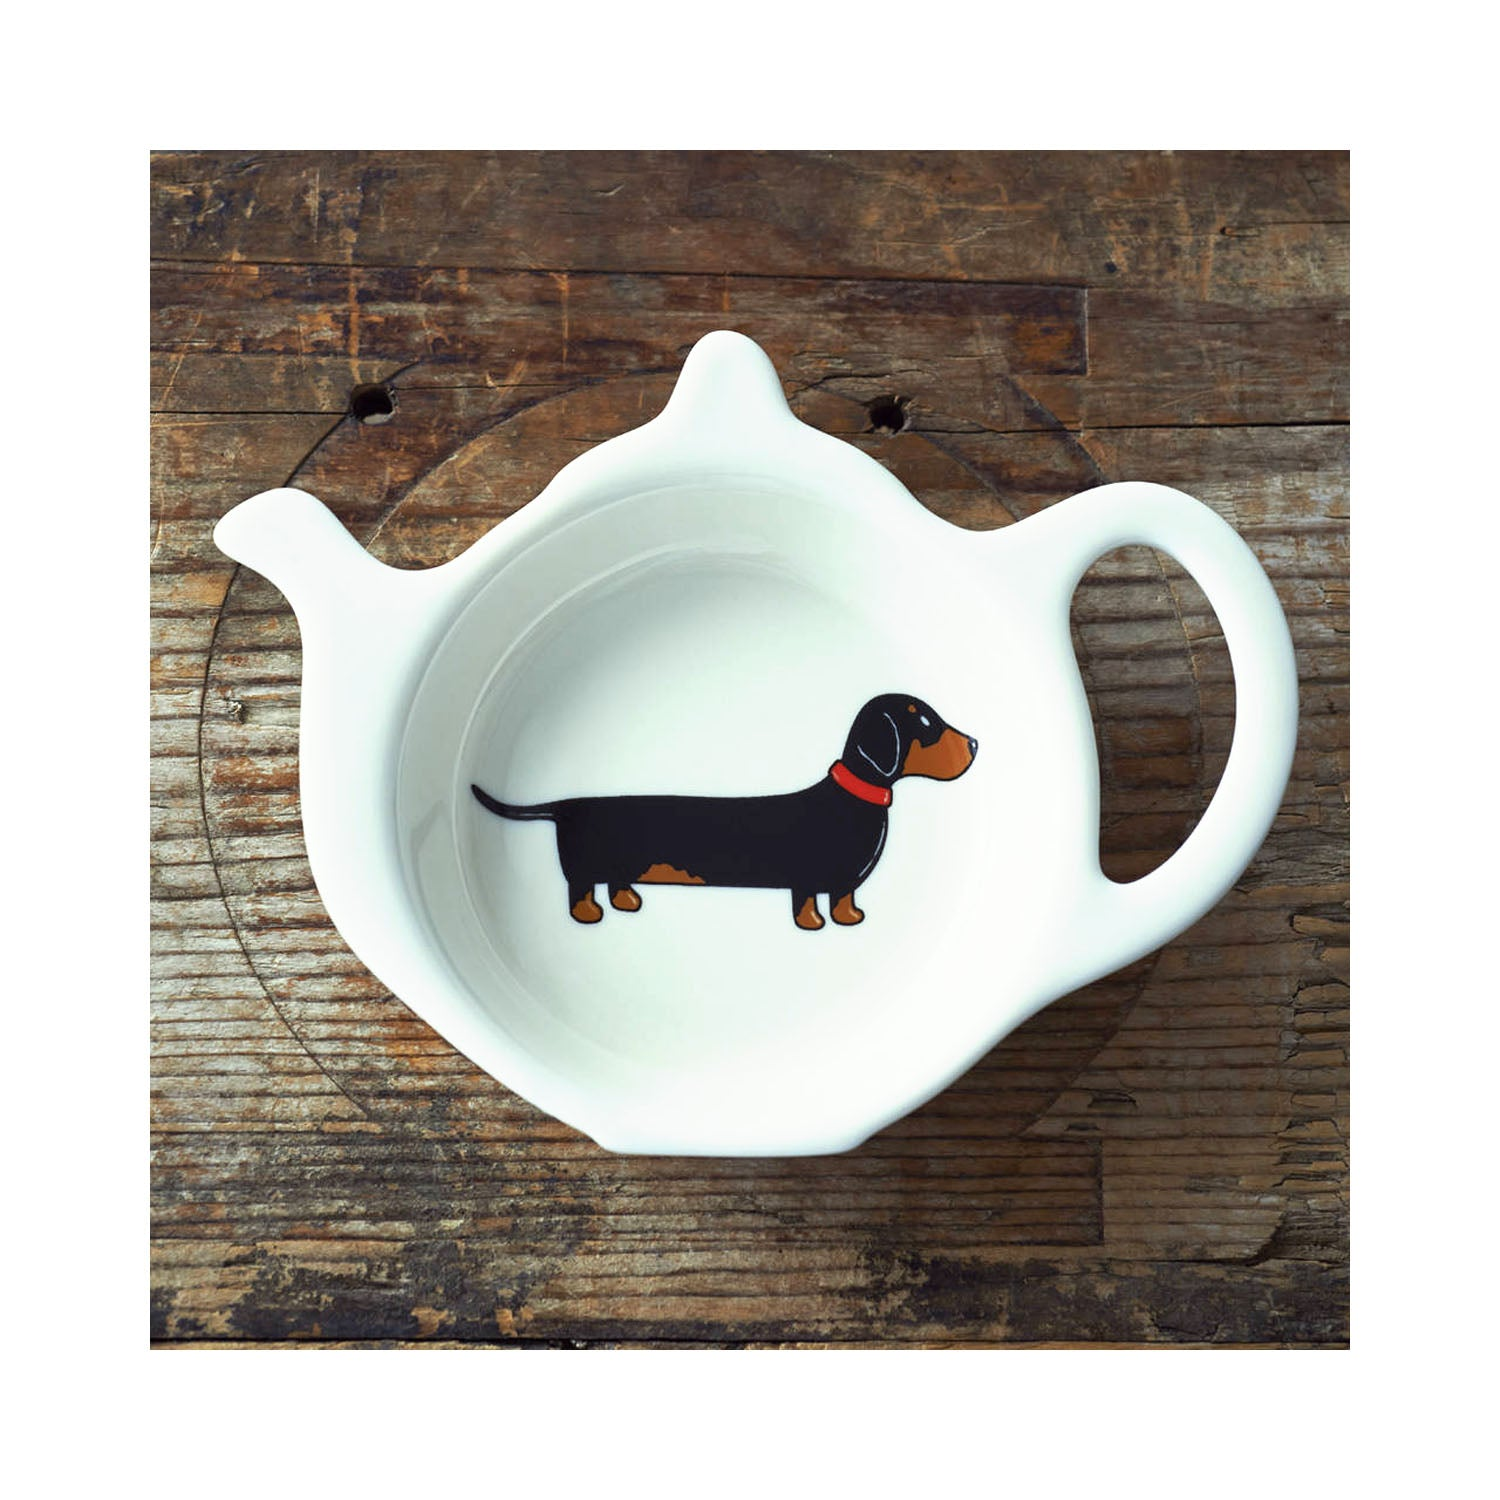 Dog Lover Gifts available at Dog Krazy Gifts - Florence The Dachshund Teabag Dish - part of the Sweet William range available from Dog Krazy Gifts